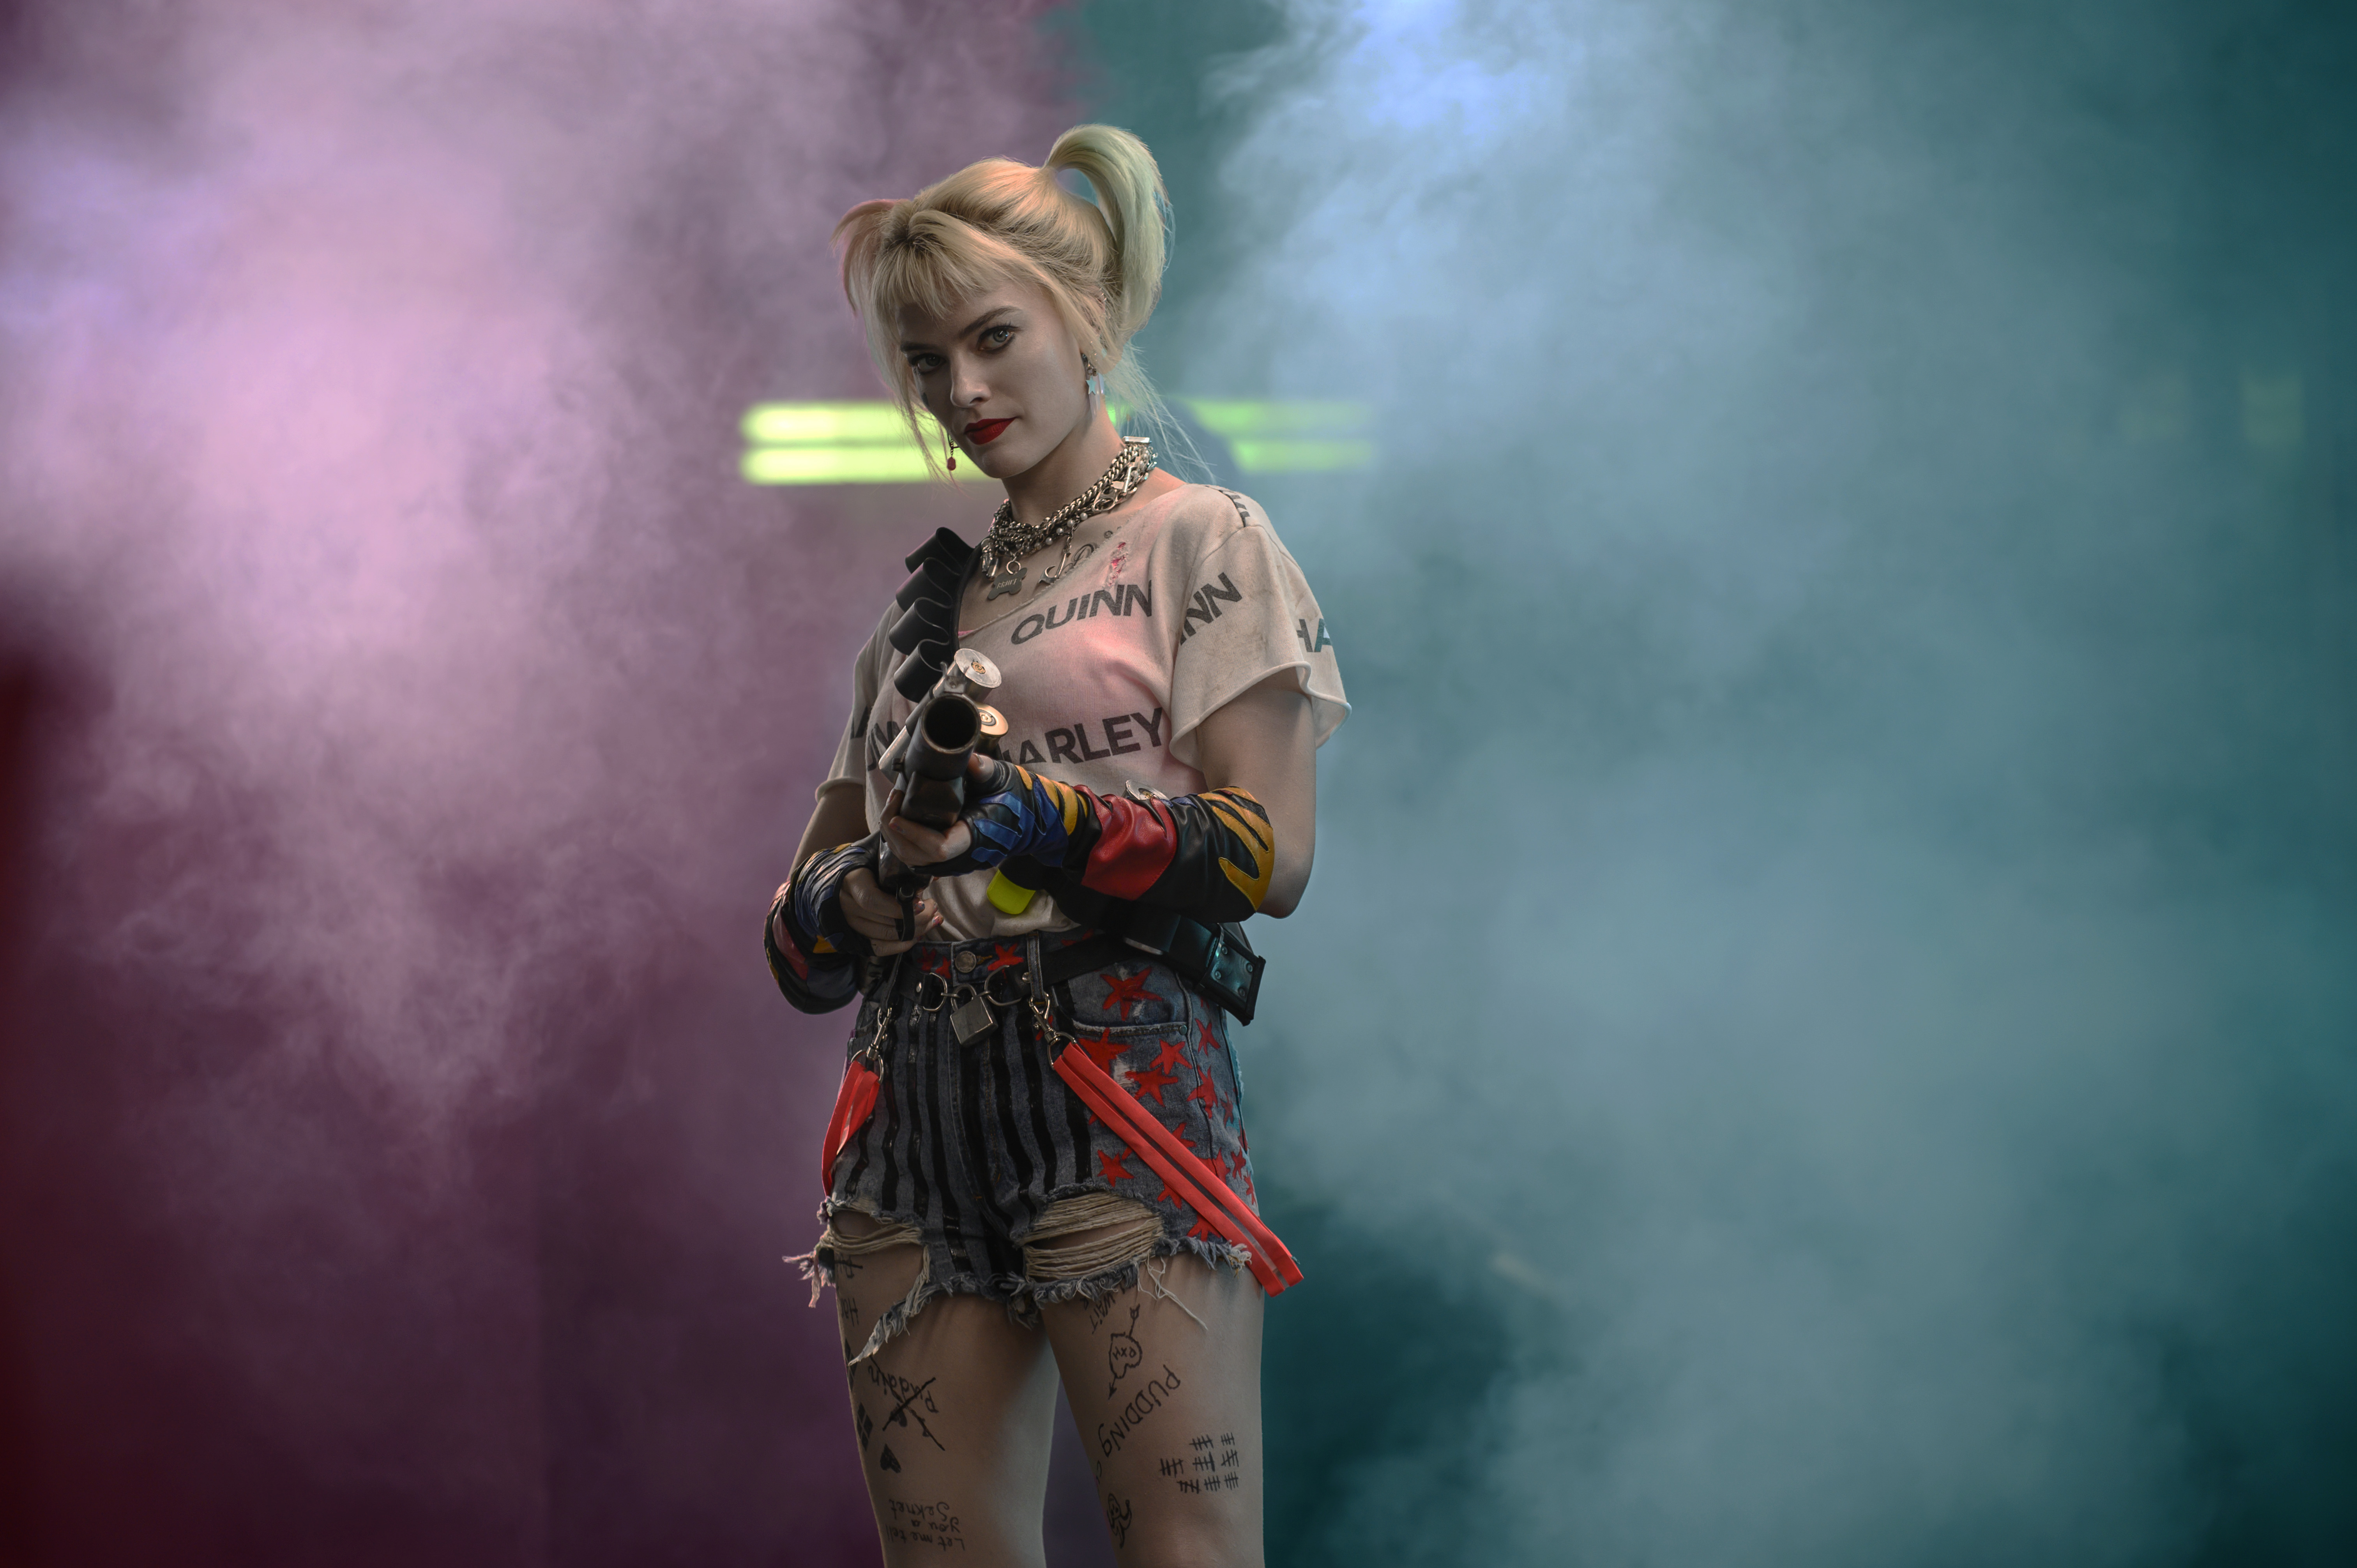 Margot Robbie in 'Birds of Prey (And The Fantabulous Emancipation of Harley Quinn.'